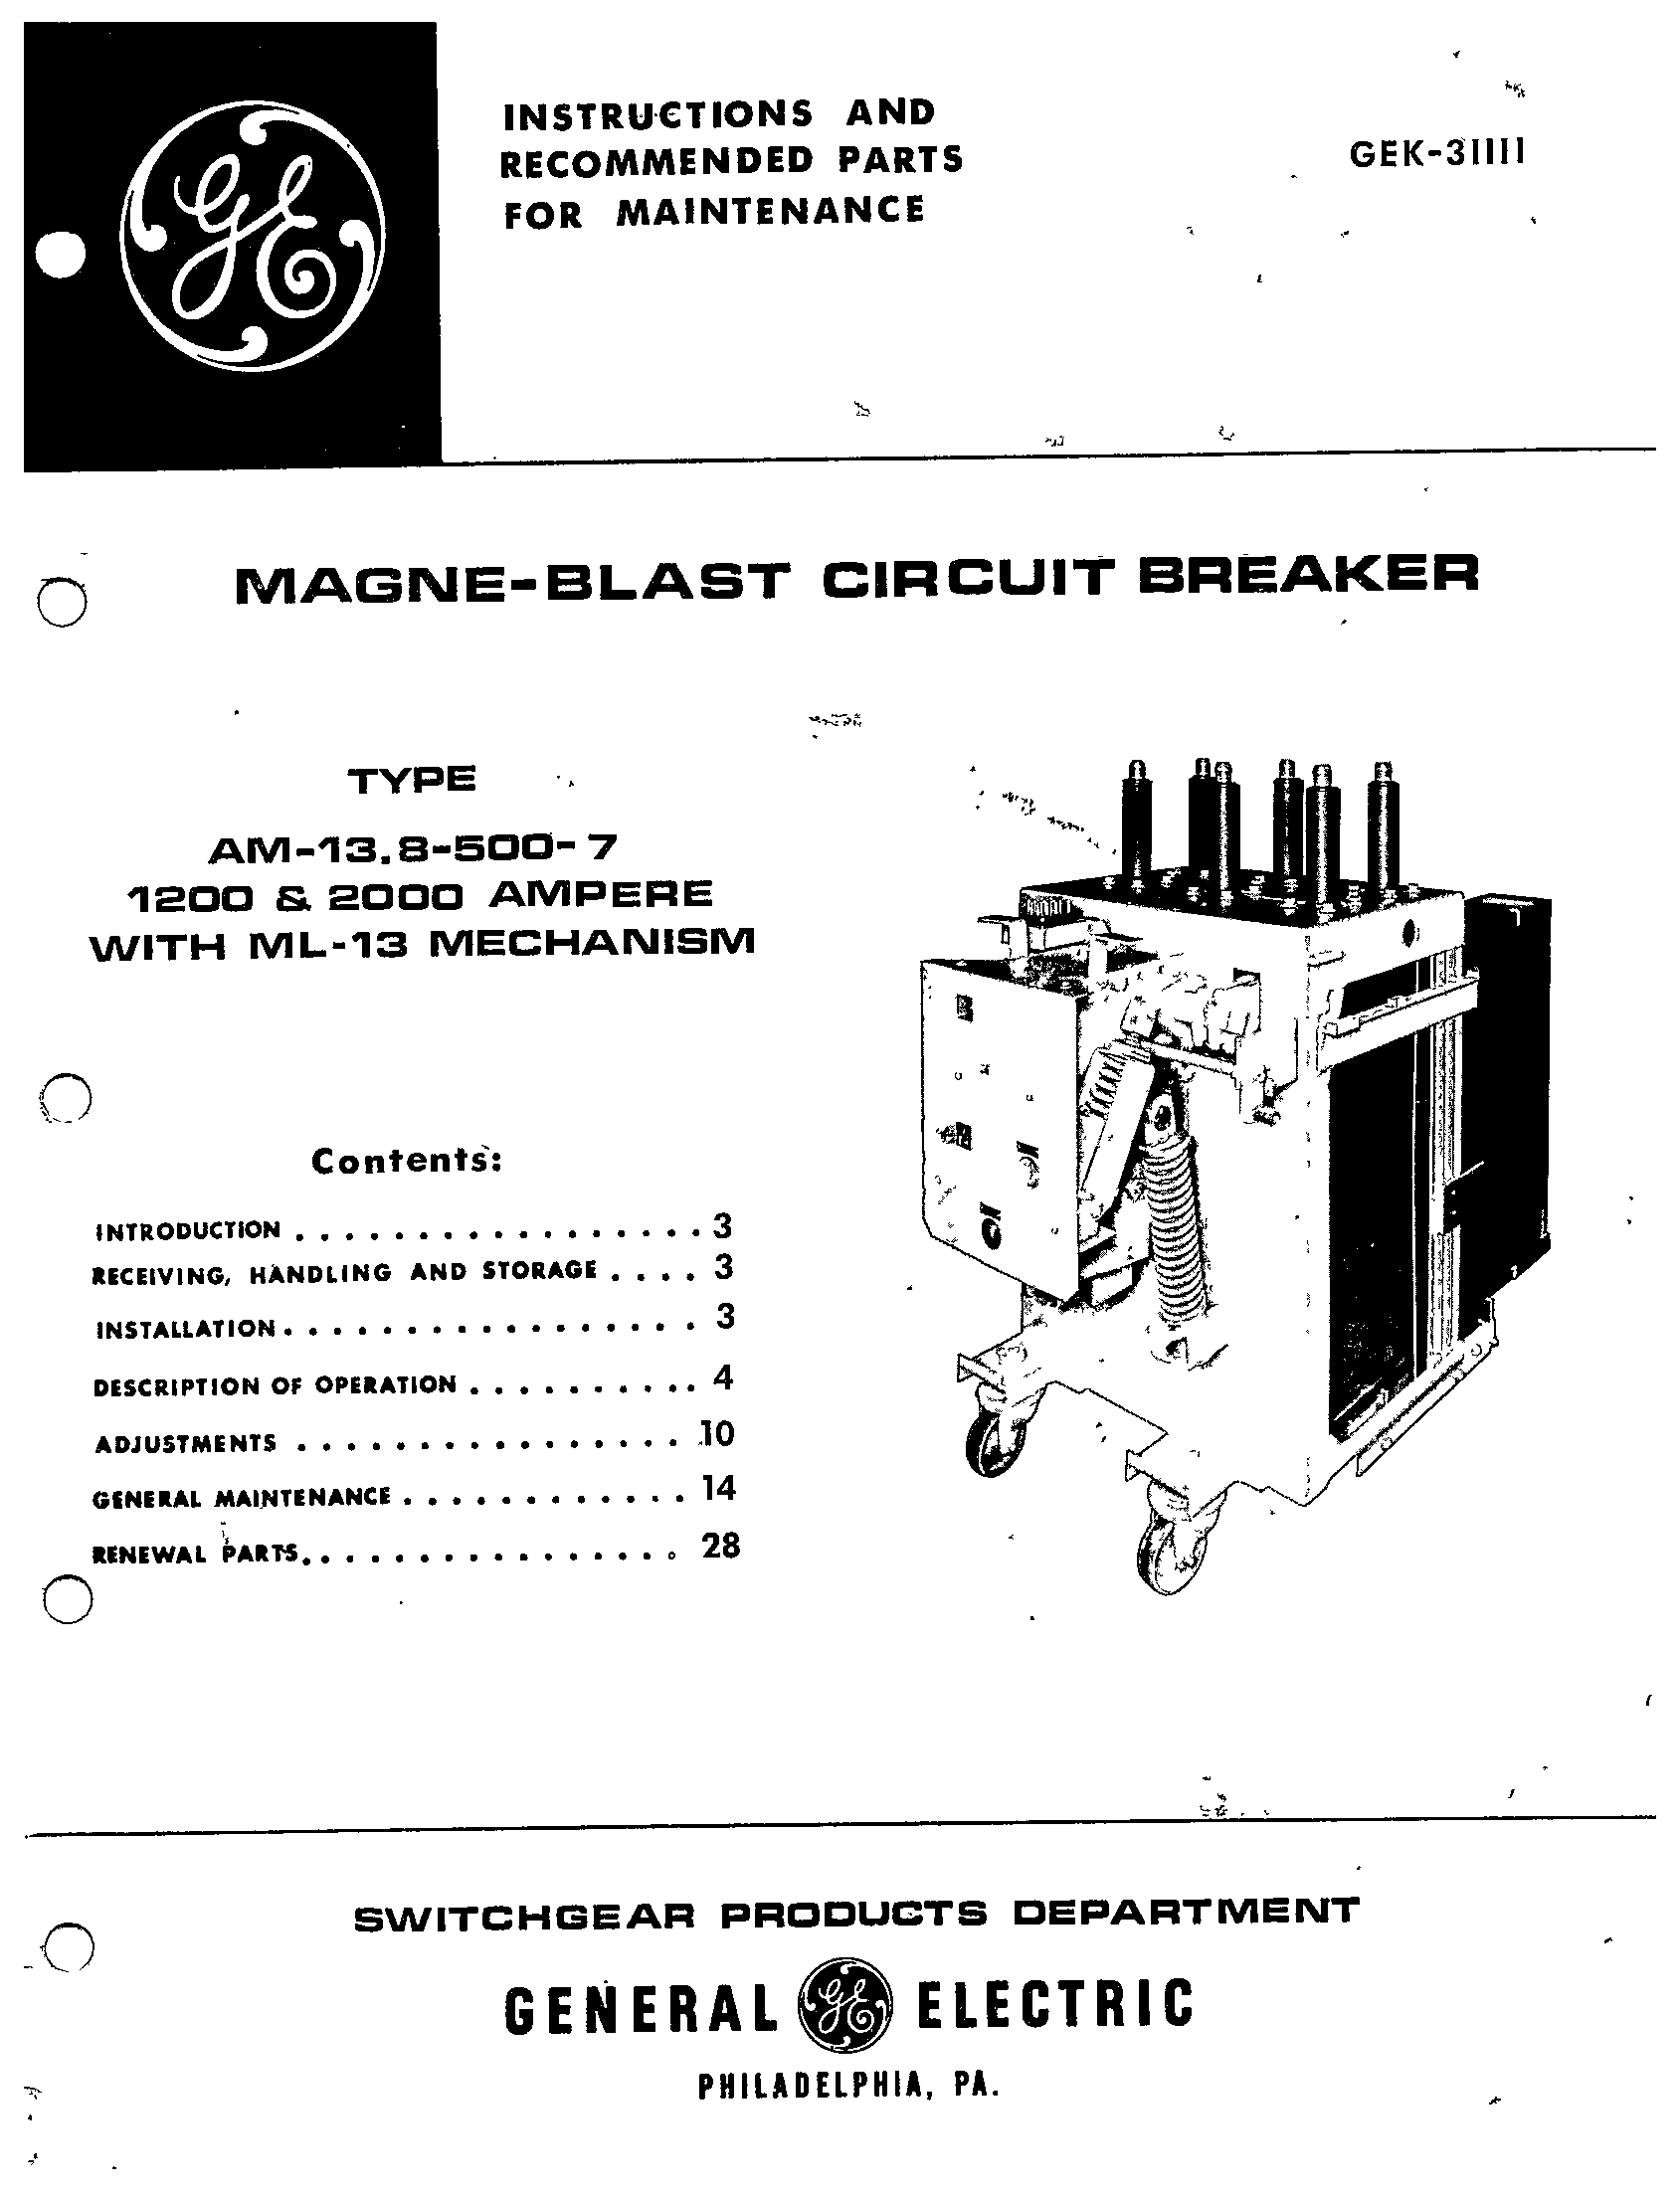 hight resolution of gek 31111 magne blast circuit breaker